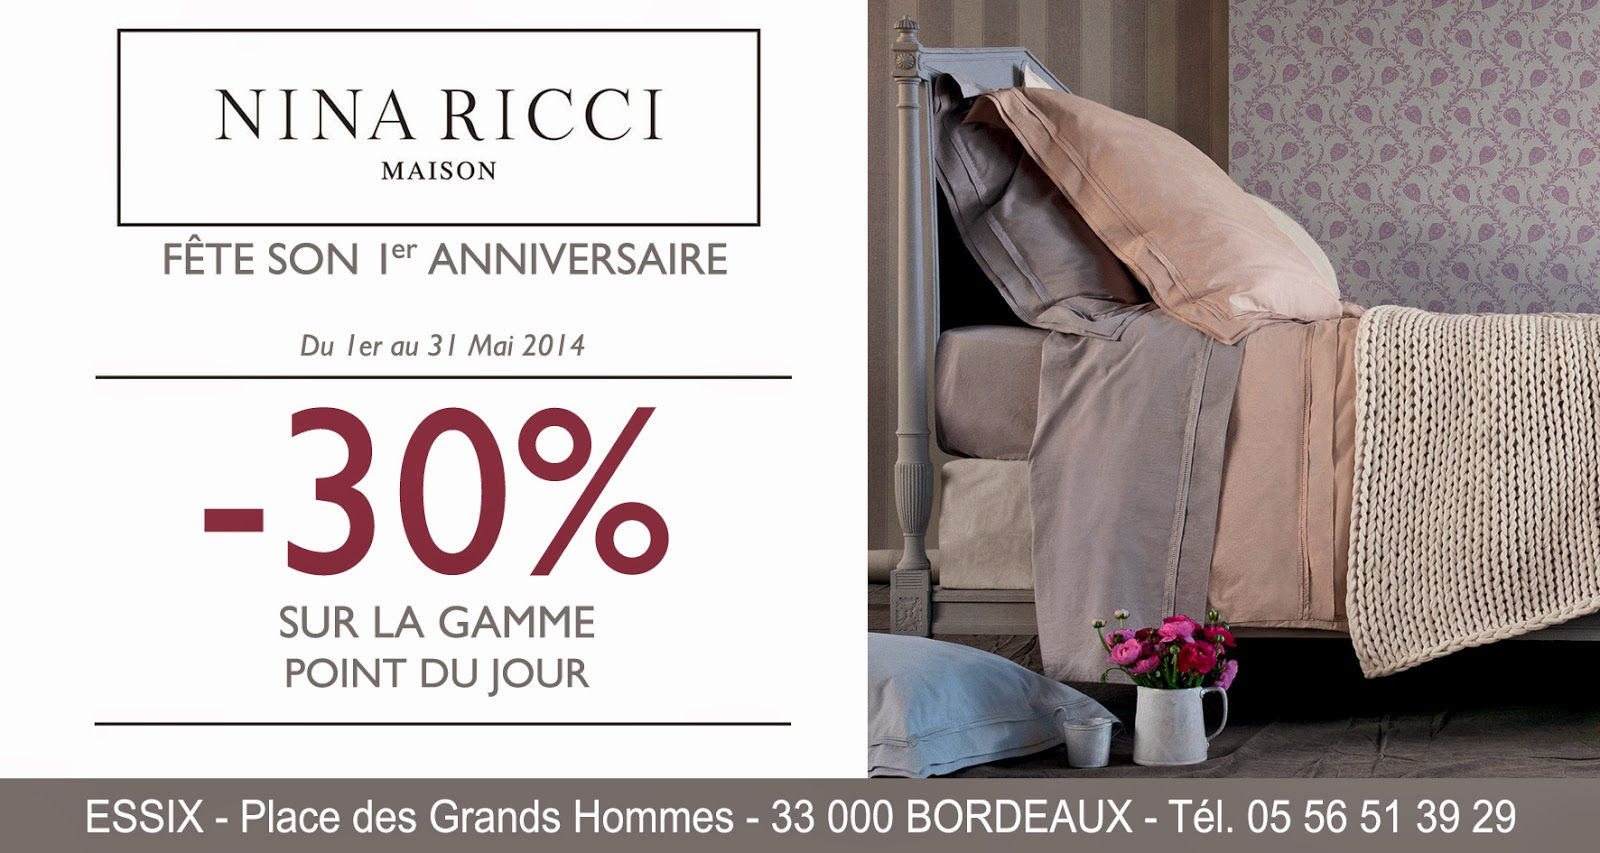 galerie des grands hommes le 1r anniversaire de nina ricci maison. Black Bedroom Furniture Sets. Home Design Ideas